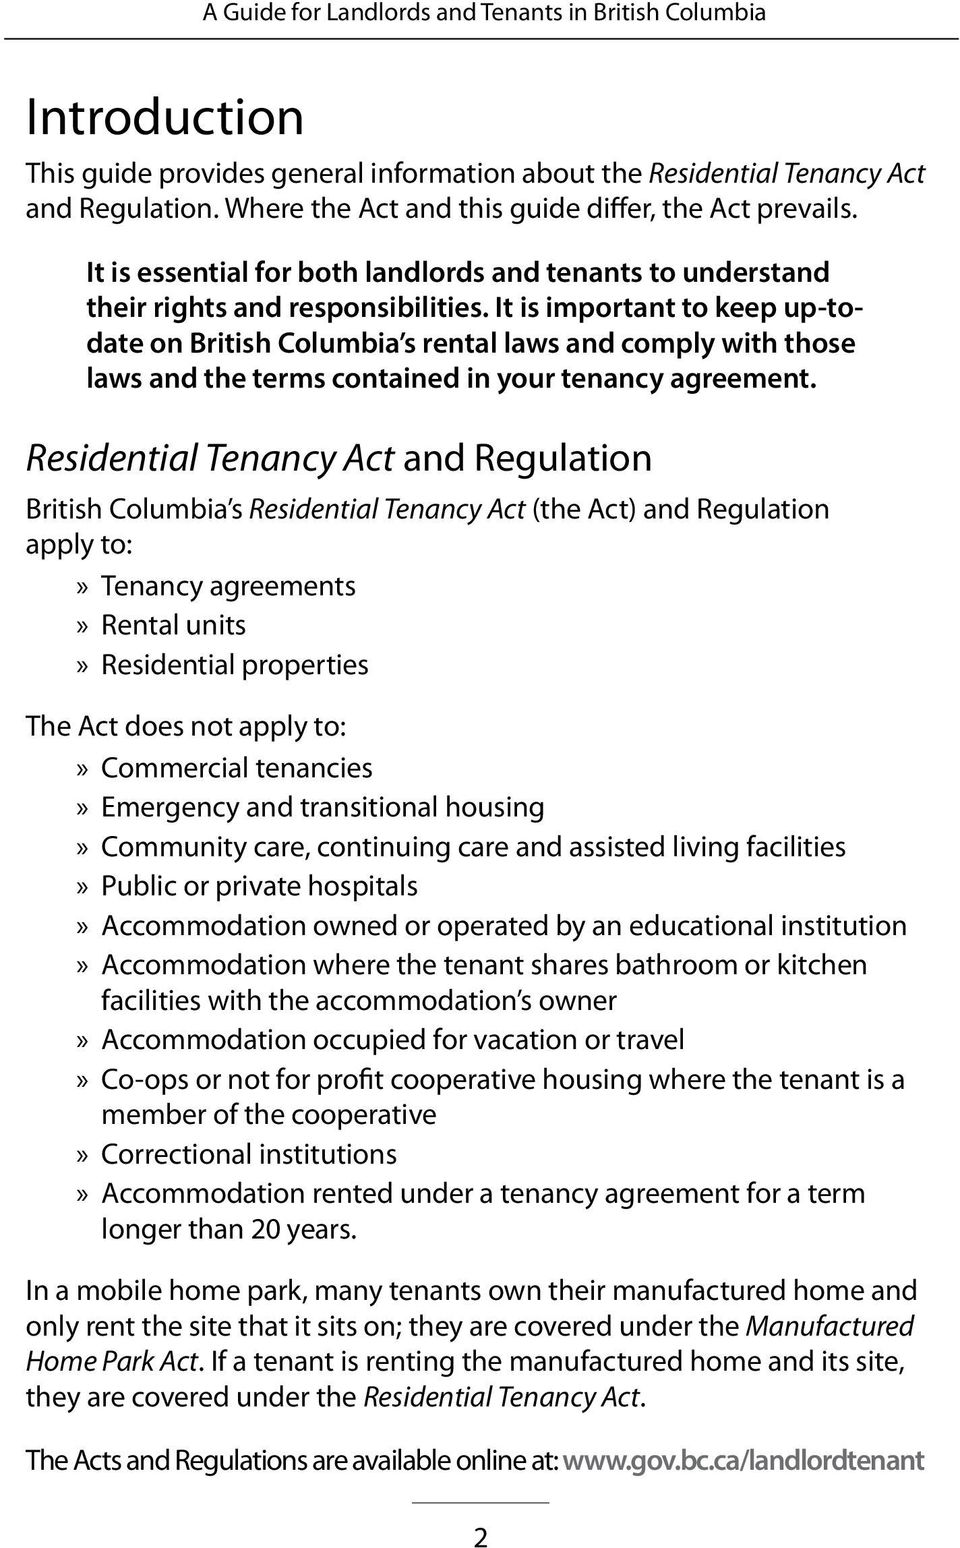 A Guide For Landlords Tenants In British Columbia Residential